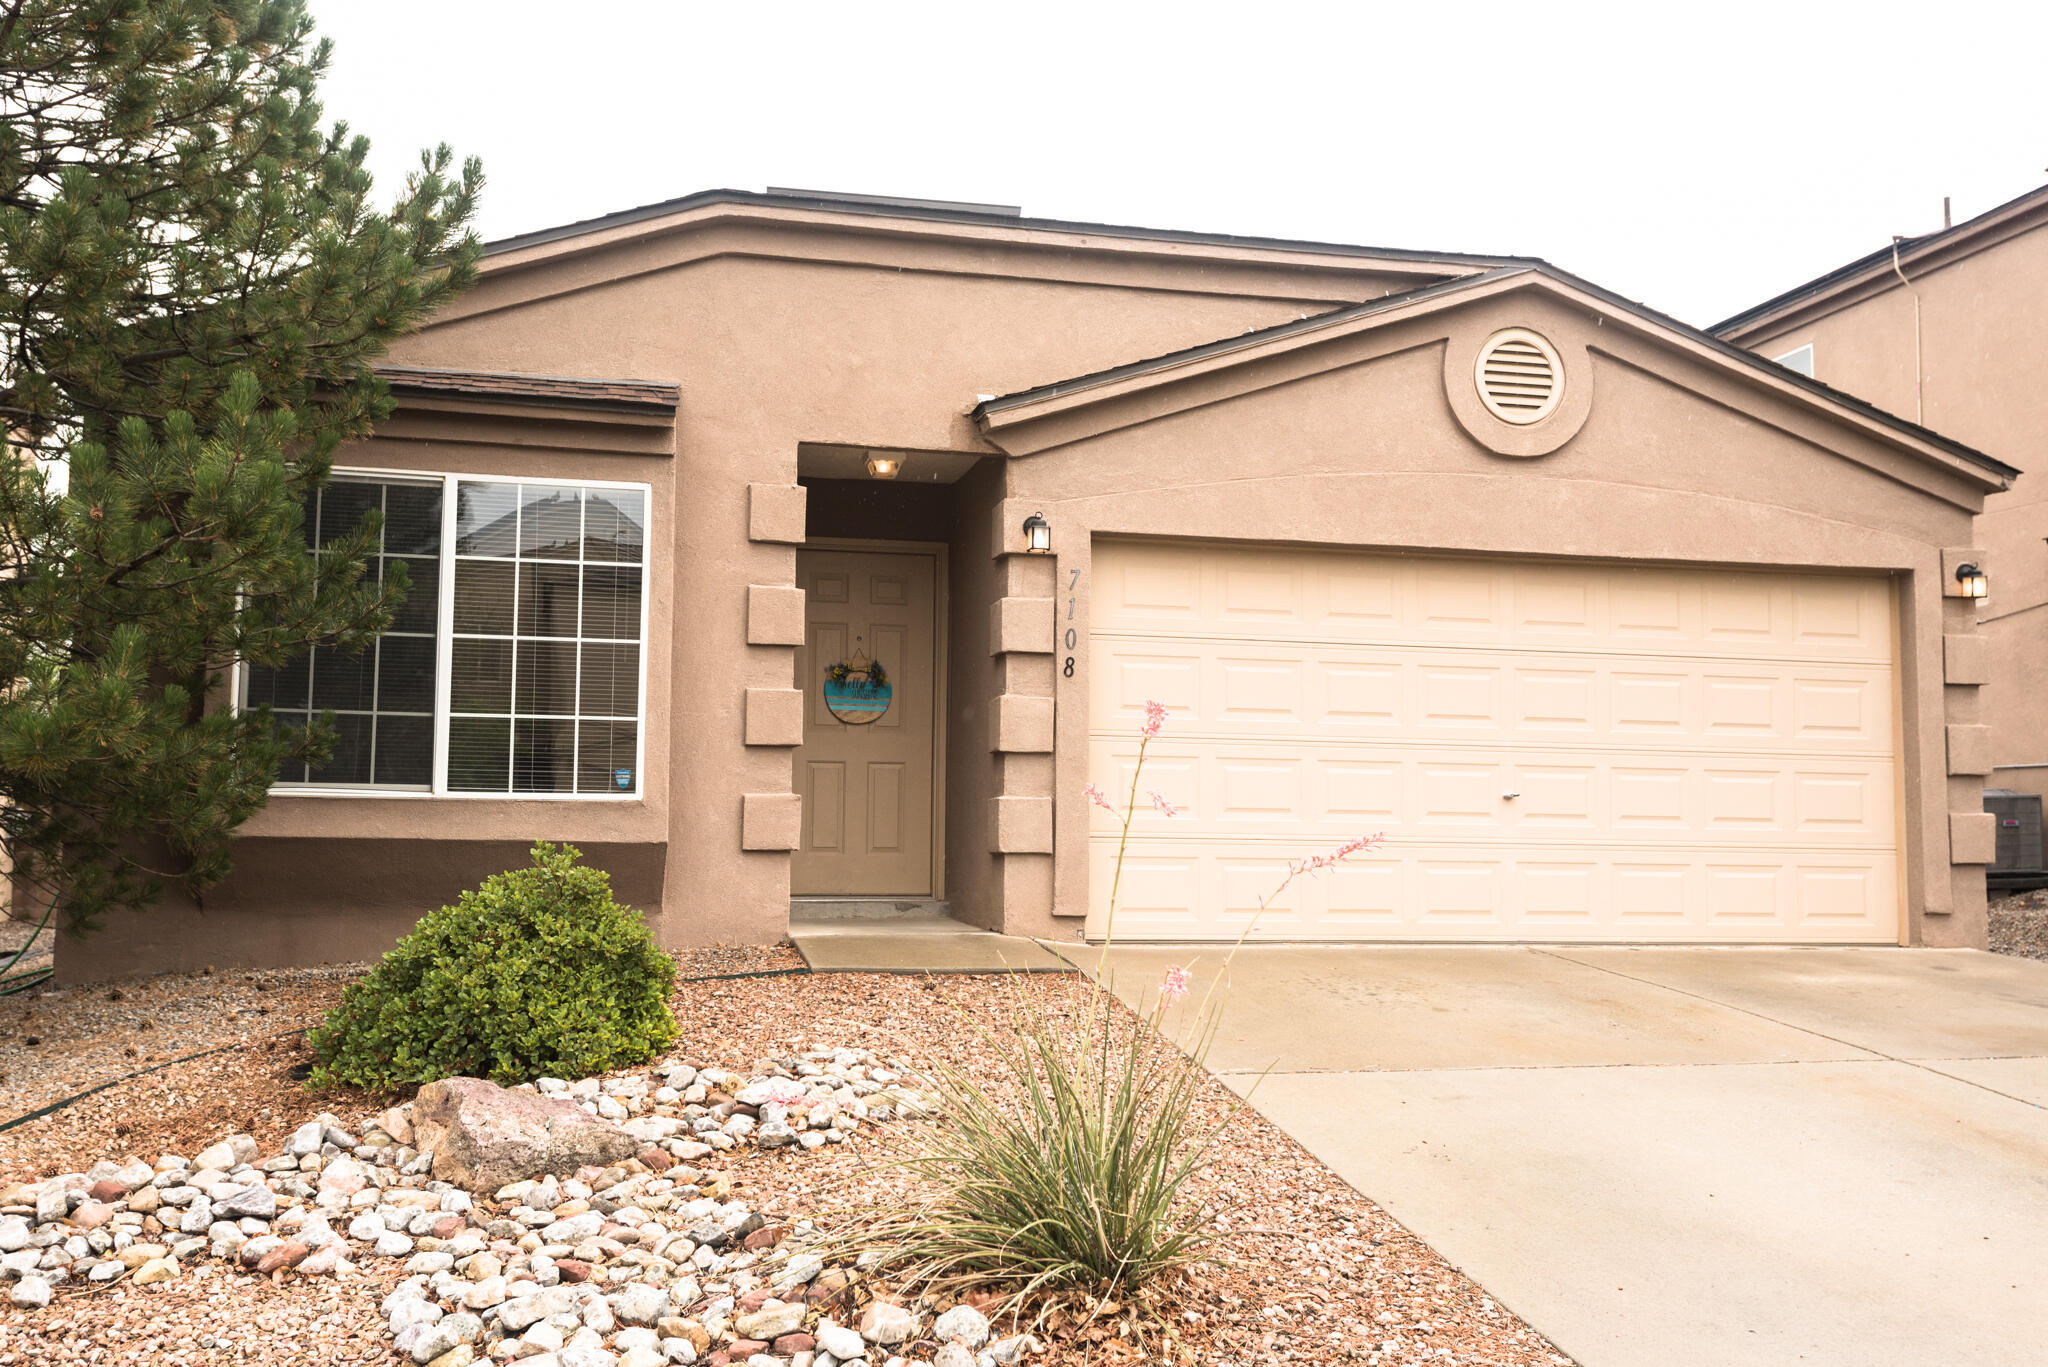 Welcome home! Beautiful single story in very desirable neighborhood with community pool, multiple parks, trails, and quick access to major road Paseo Del Norte. Recent updates include New wood vinyl flooring, new hot water heater and many other updated items.  Great back yard with patio and gazebo.